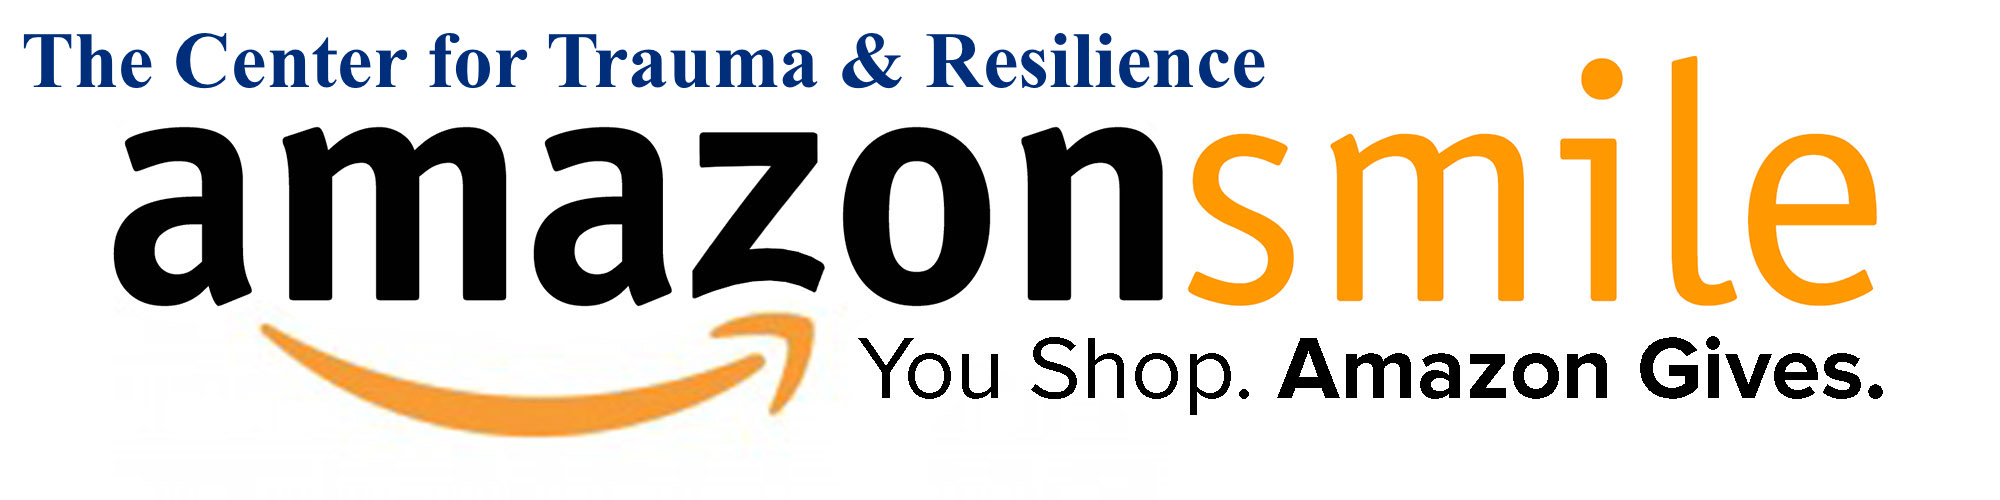 Shop on Amazon and Help Trauma Survivors